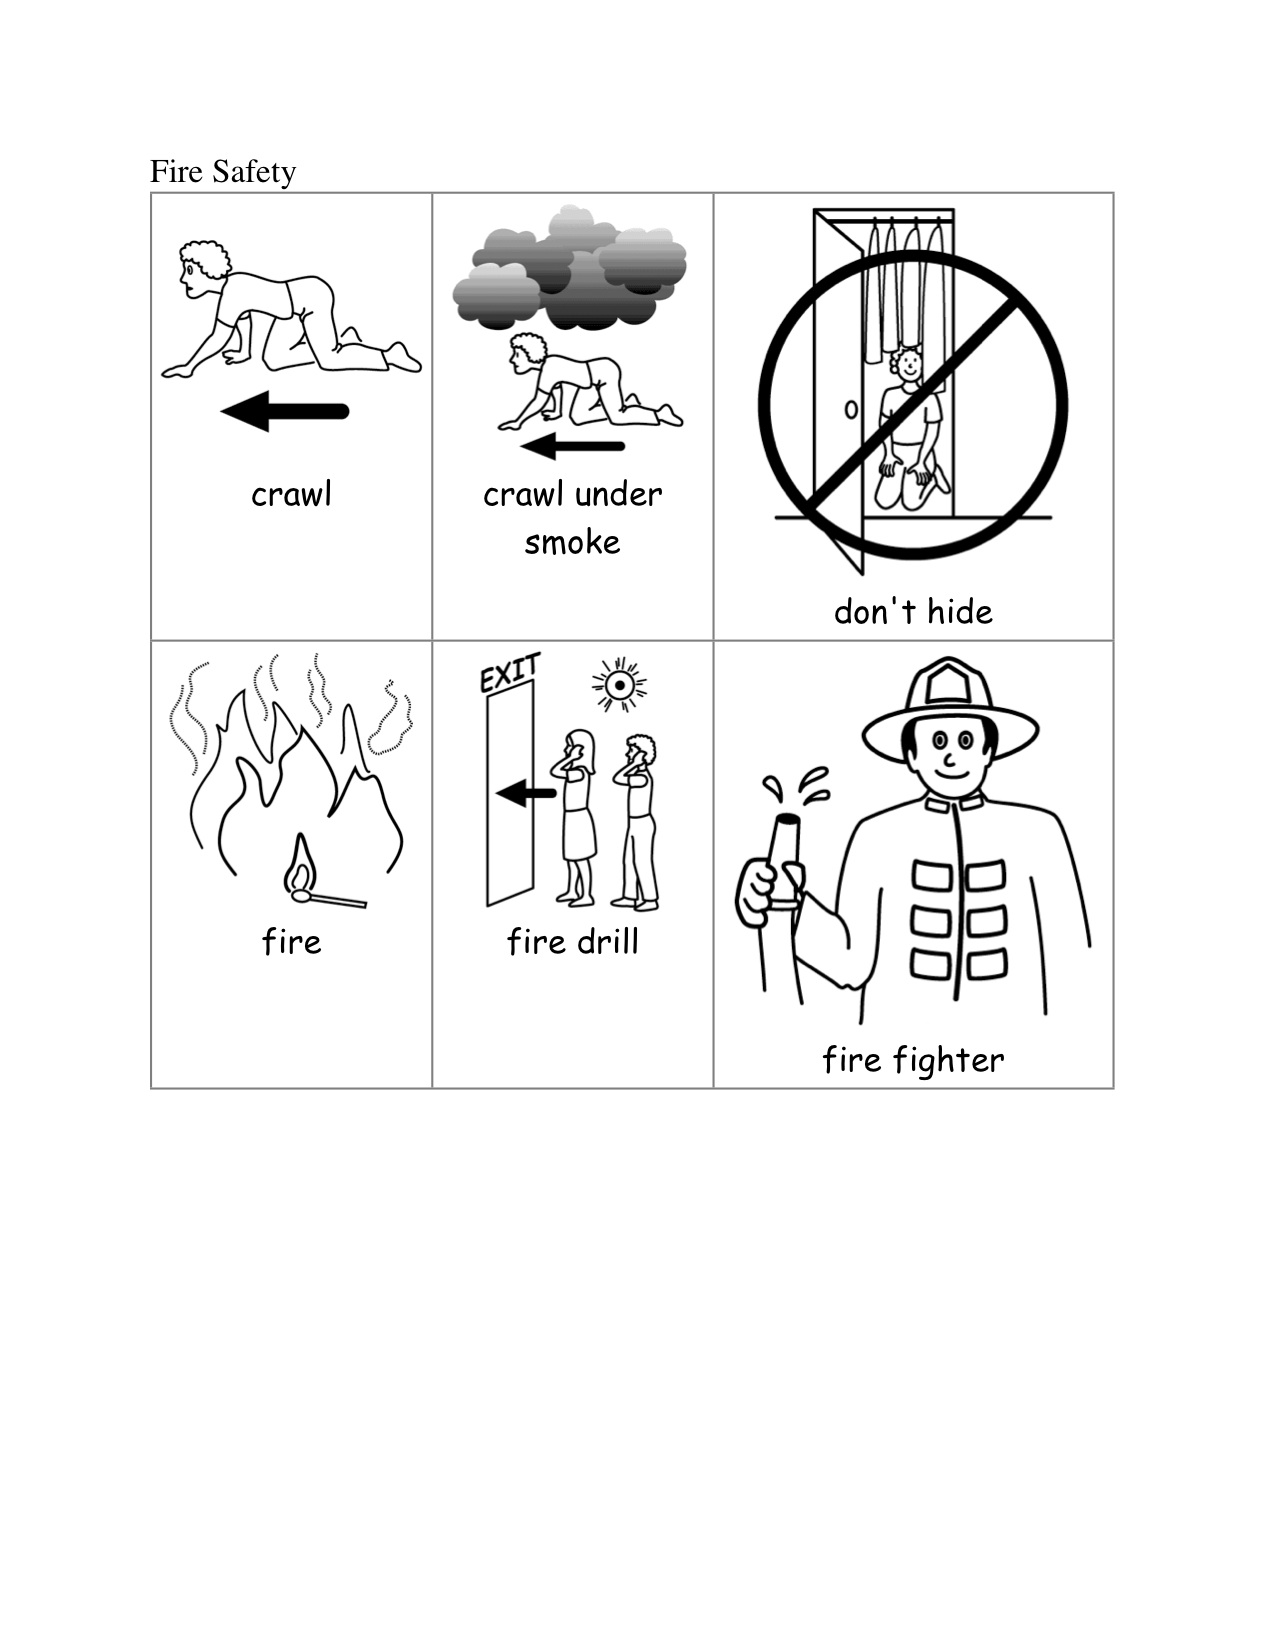 Kindergarten fire safety clipart black and white clipart library stock Fire Safety | Kindergarten Nana clipart library stock